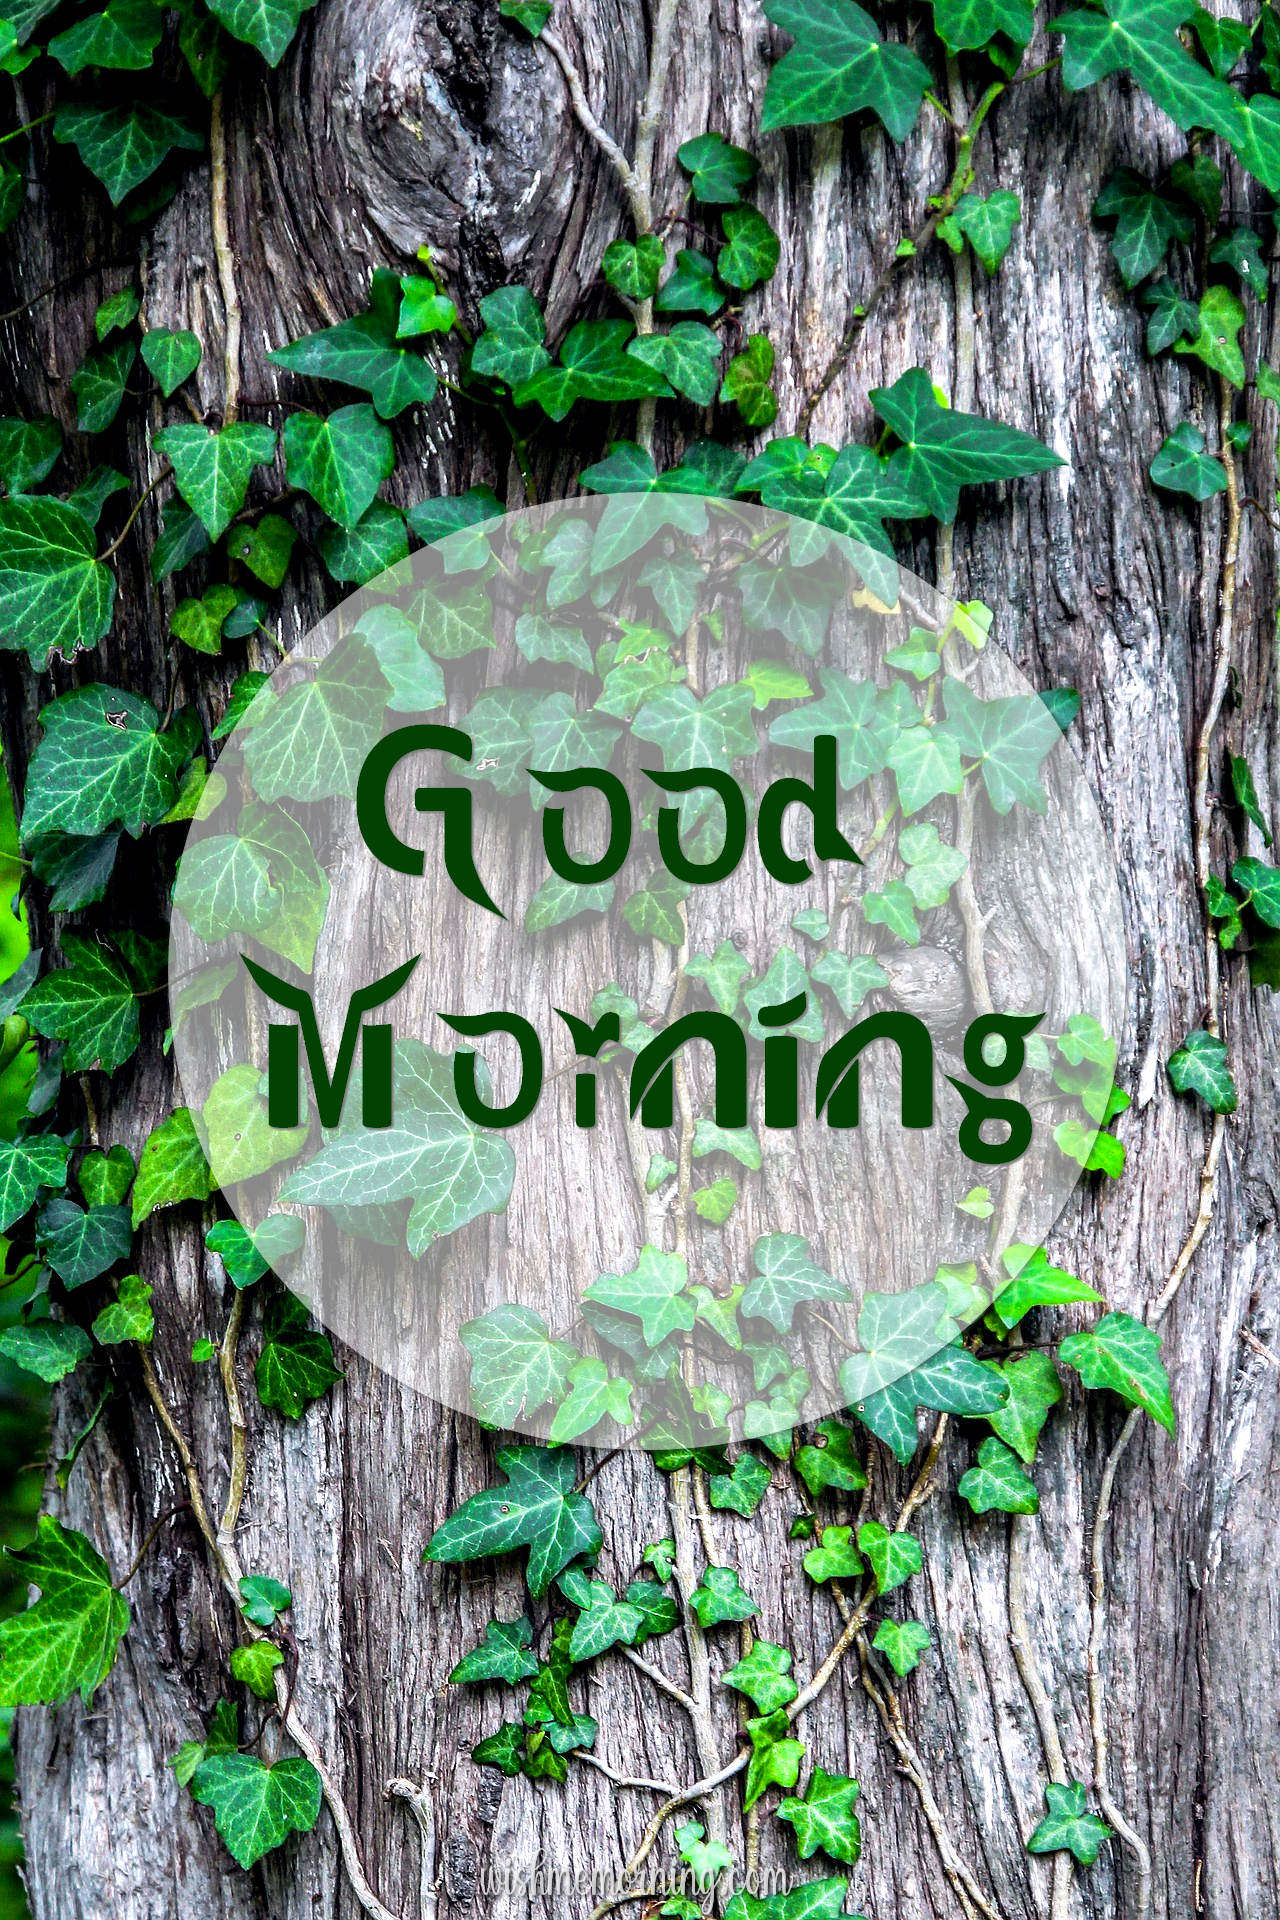 Beautiful Trees Woods Nature Images Wishes wishmemorning.com 12